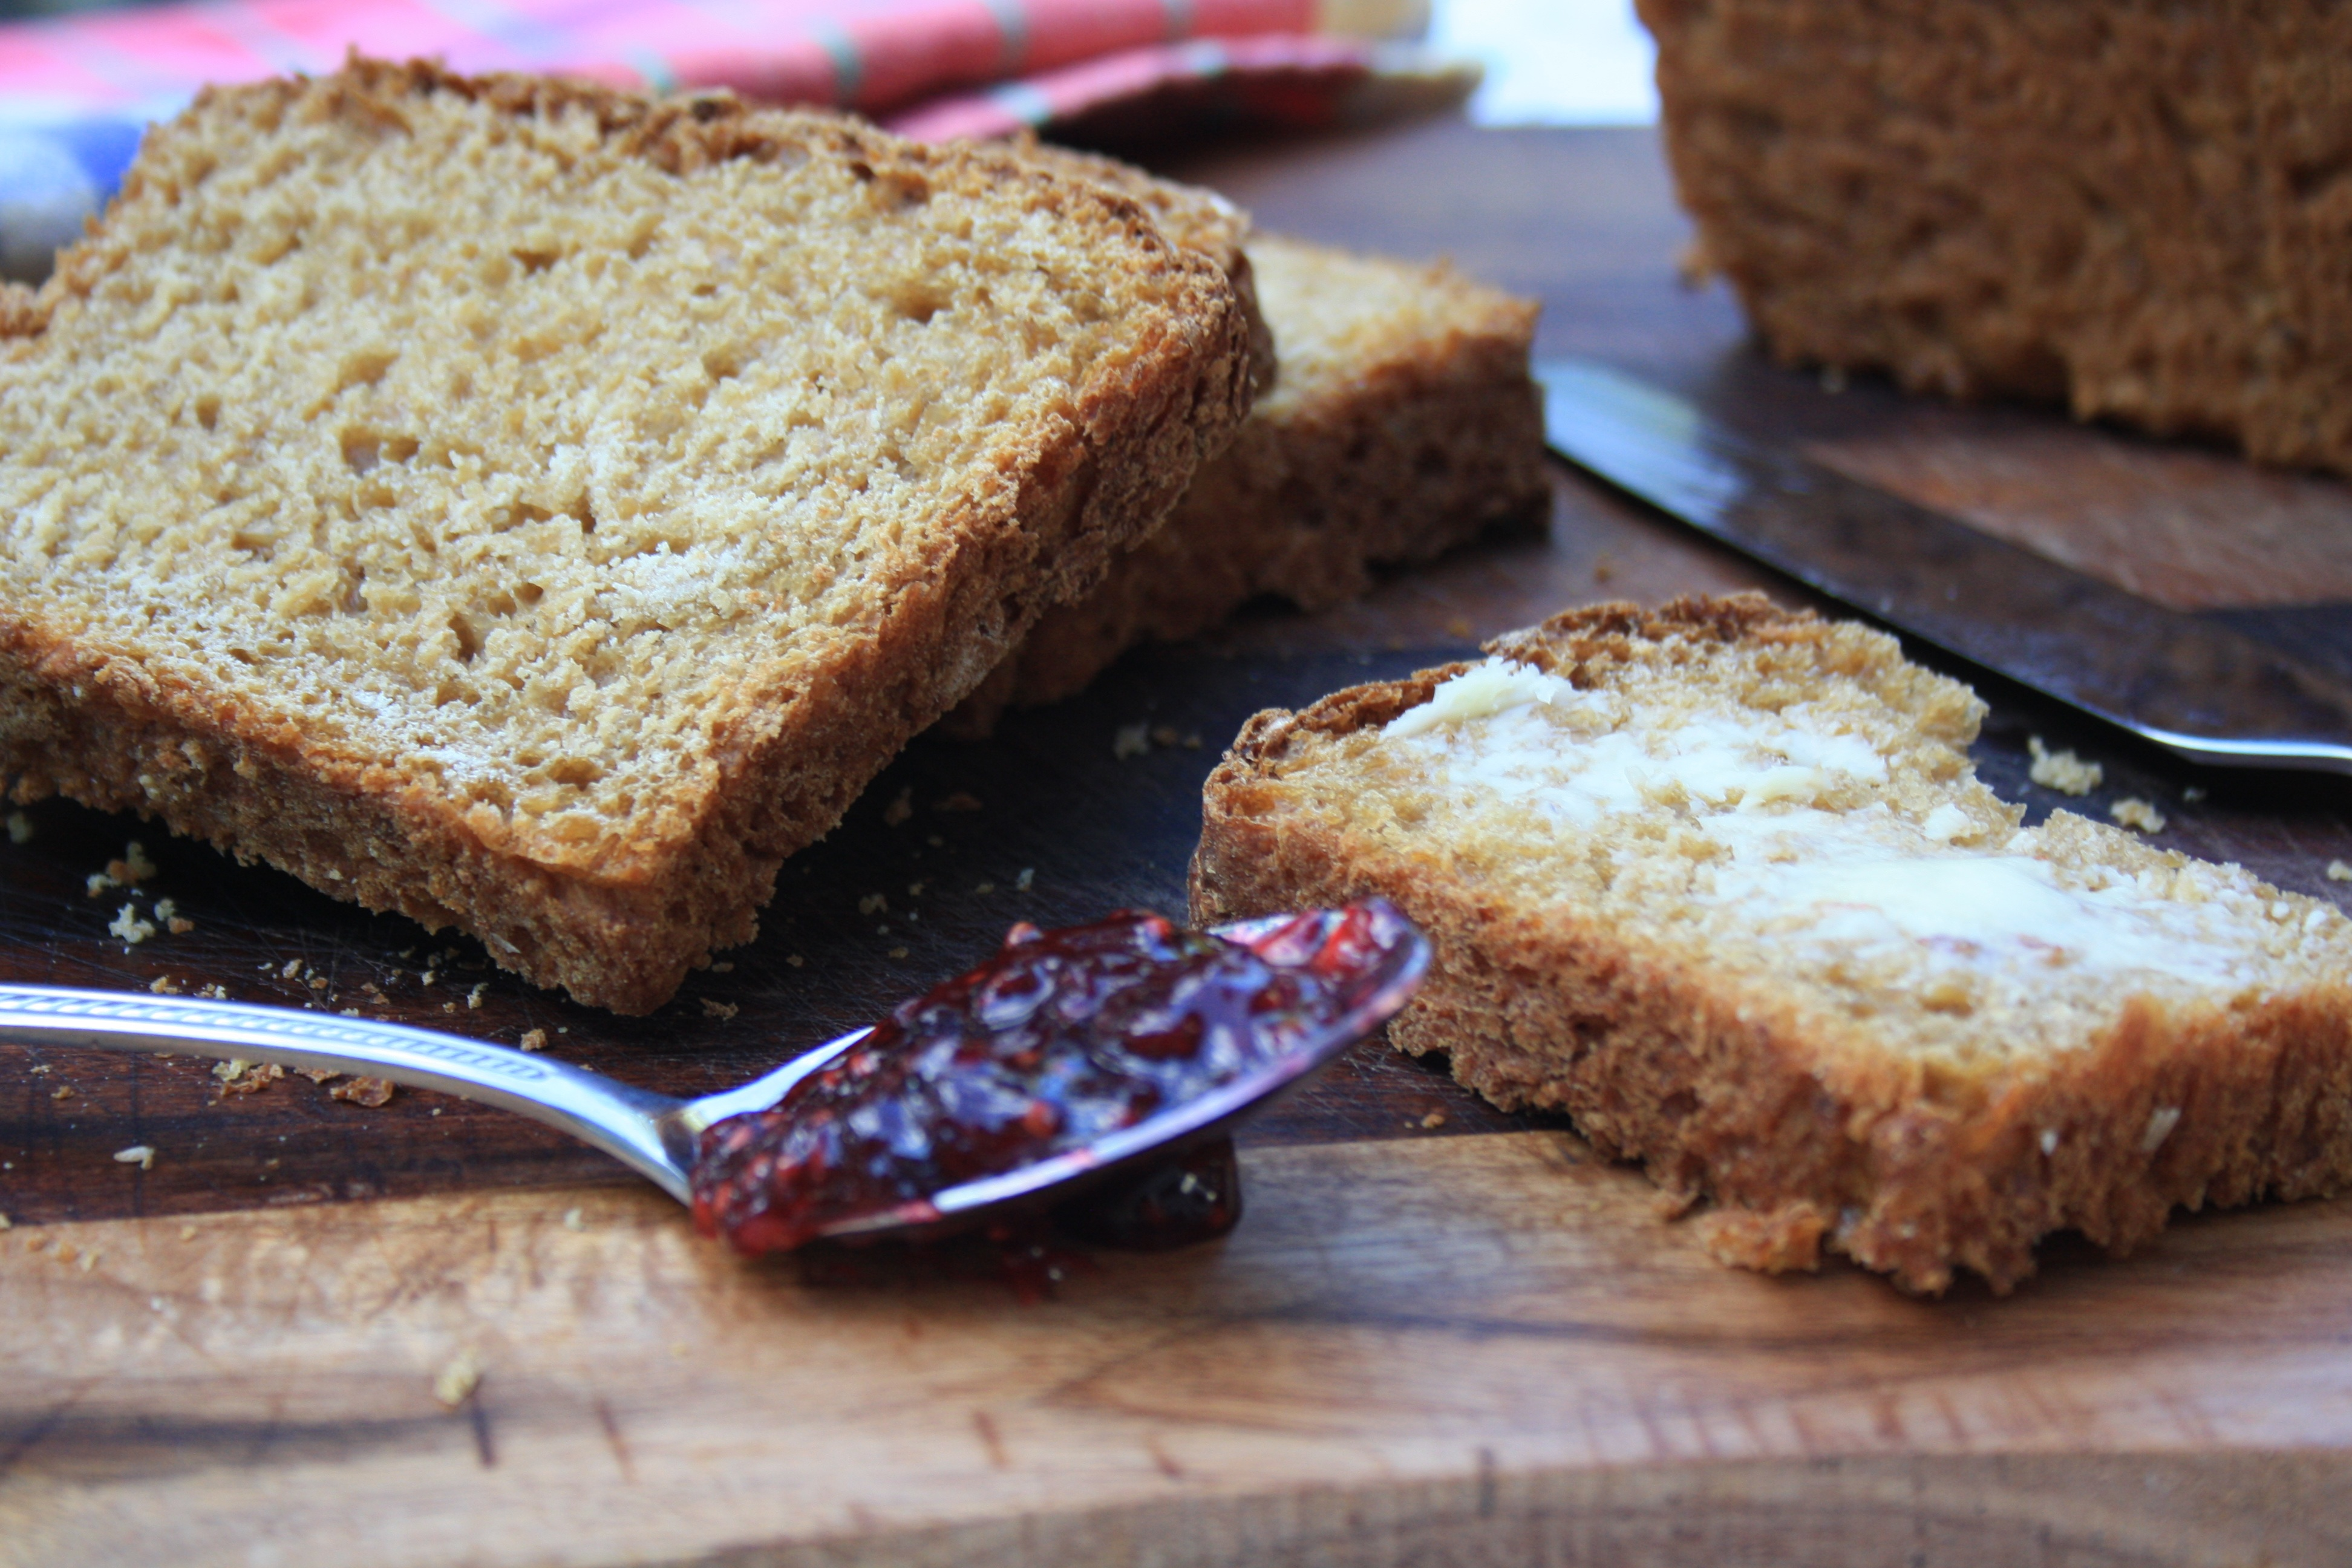 Oatmeal brown bread recipe is cold weather comfort food crosbys oatmeal brown bread recipe is cold weather comfort food crosbys molasses forumfinder Images